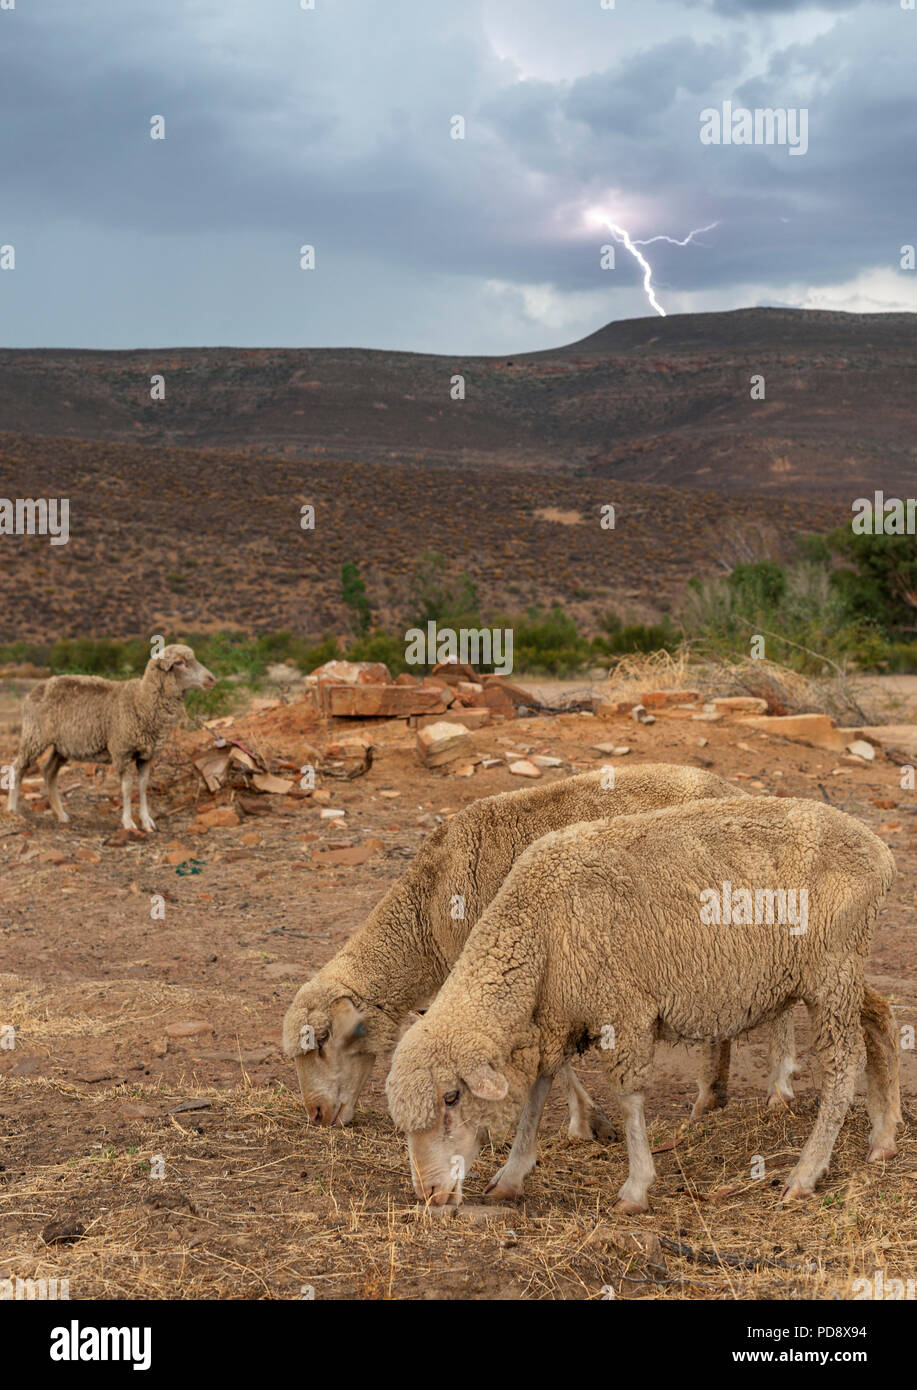 Sheep grazing during a lightning storm on a farm in the Cederberg Mountains in South Africa. Stock Photo